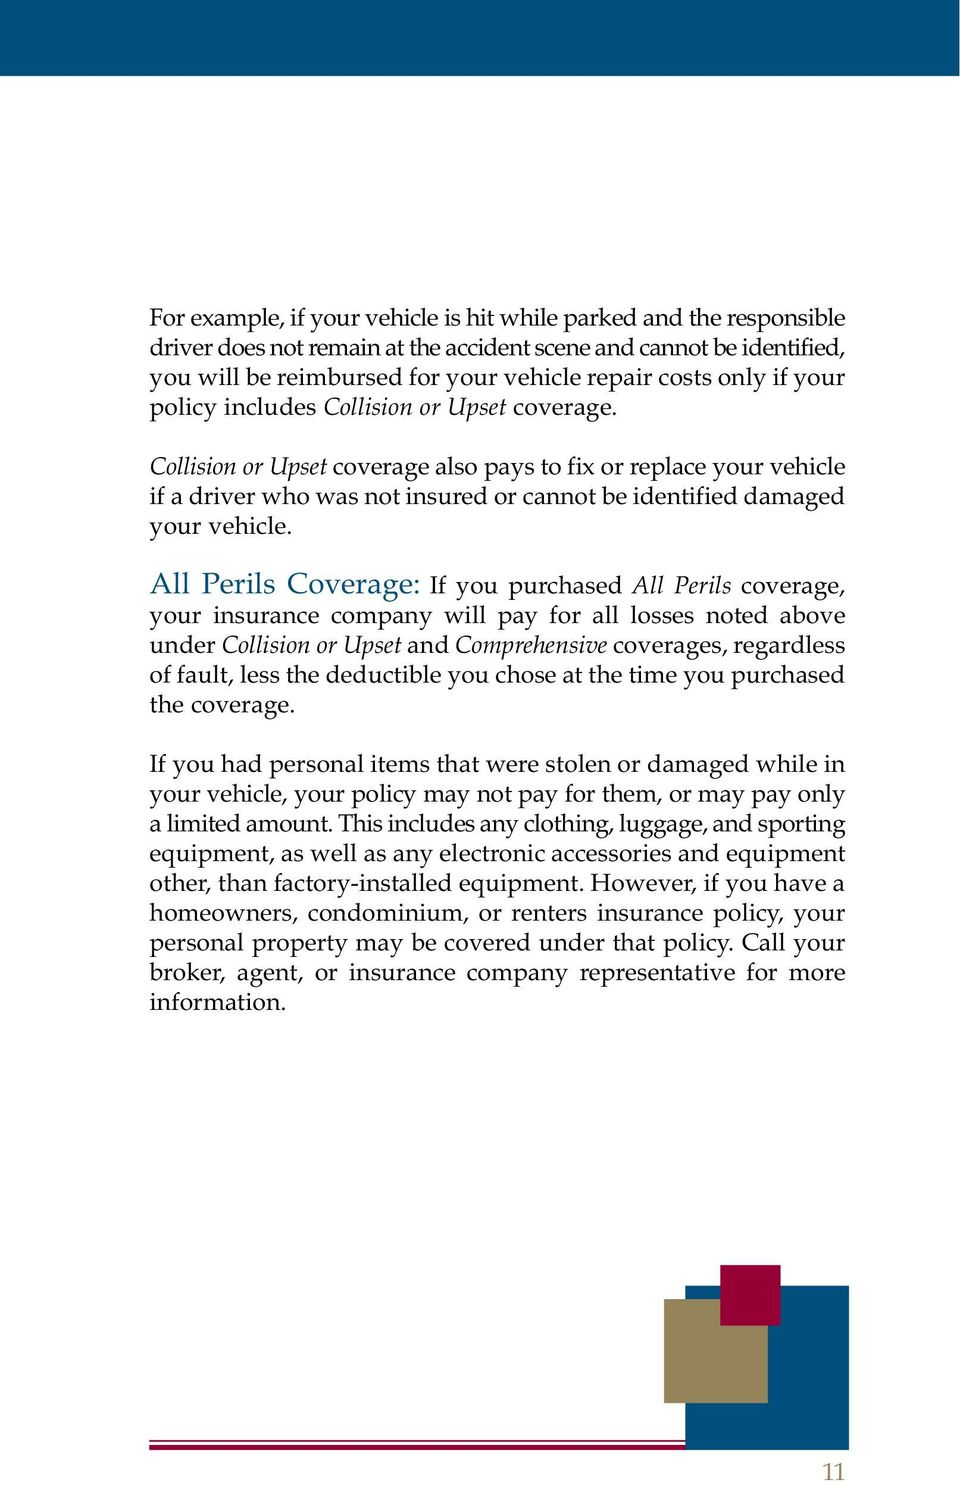 All Perils Coverage: If you purchased All Perils coverage, your insurance company will pay for all losses noted above under Collision or Upset and Comprehensive coverages, regardless of fault, less